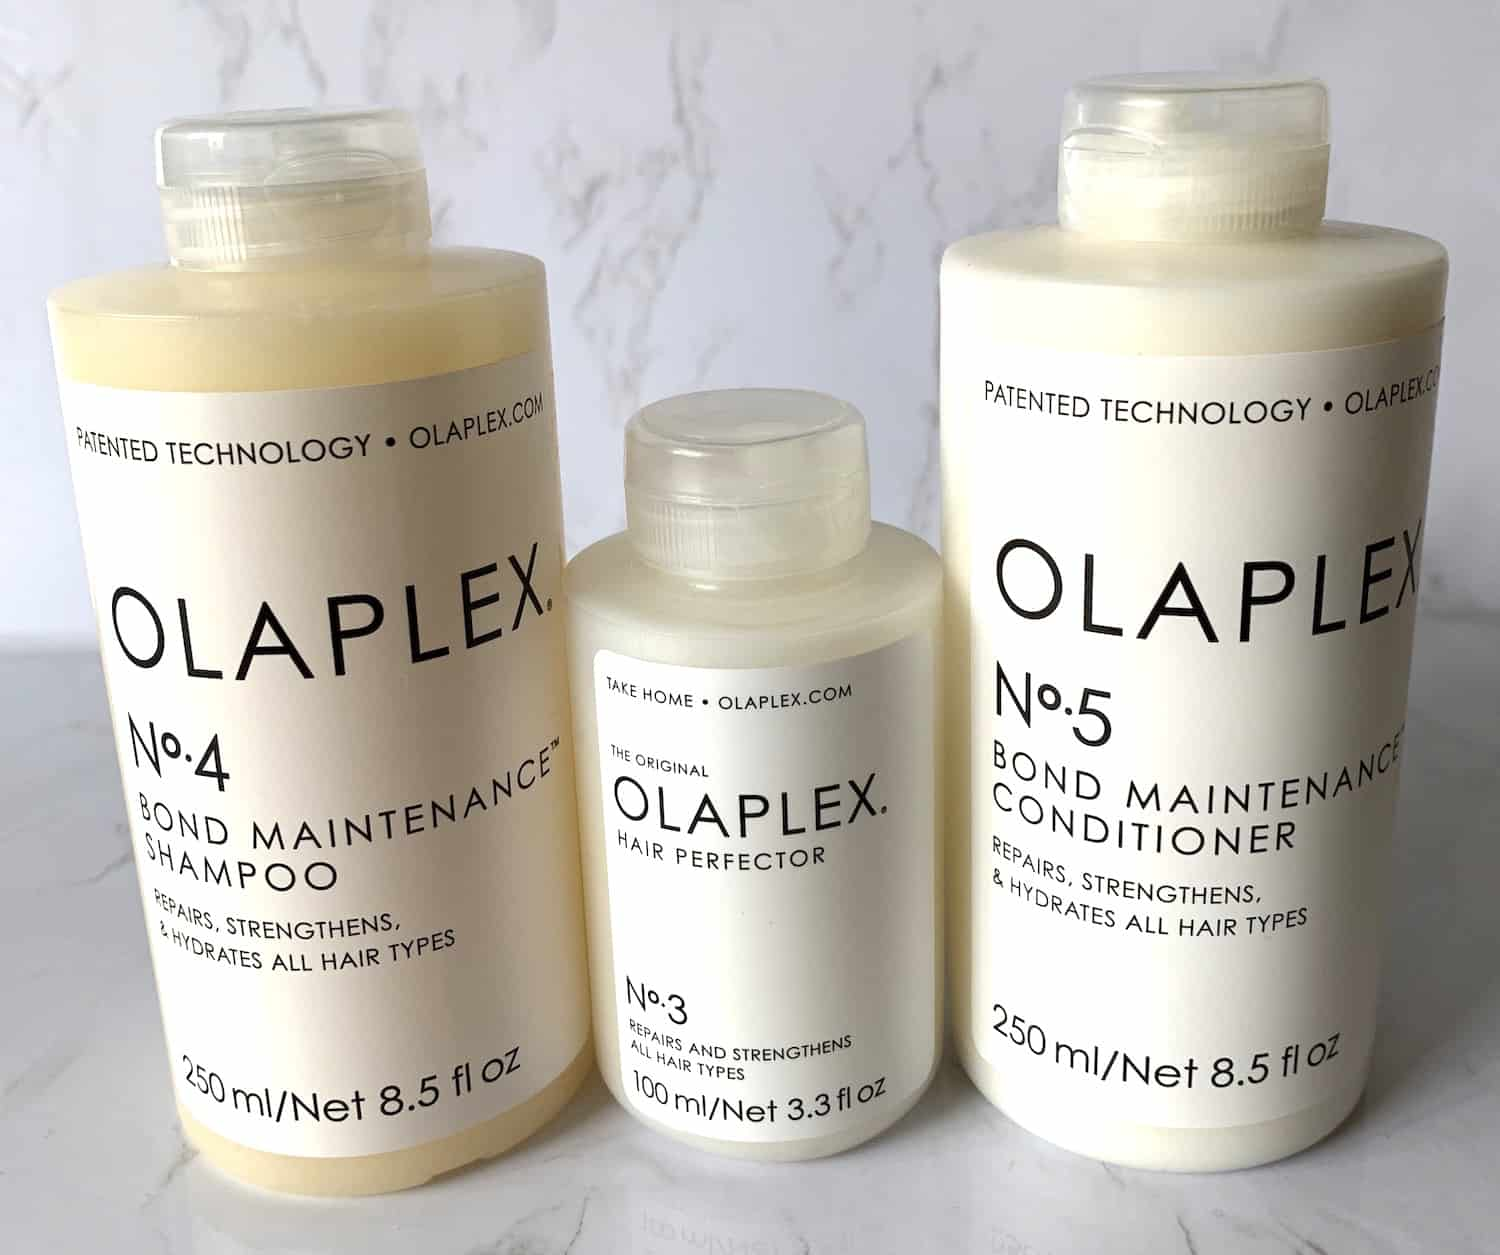 Olaplex Bond Maintenance Shampoo Conditioner and Hair Perfector